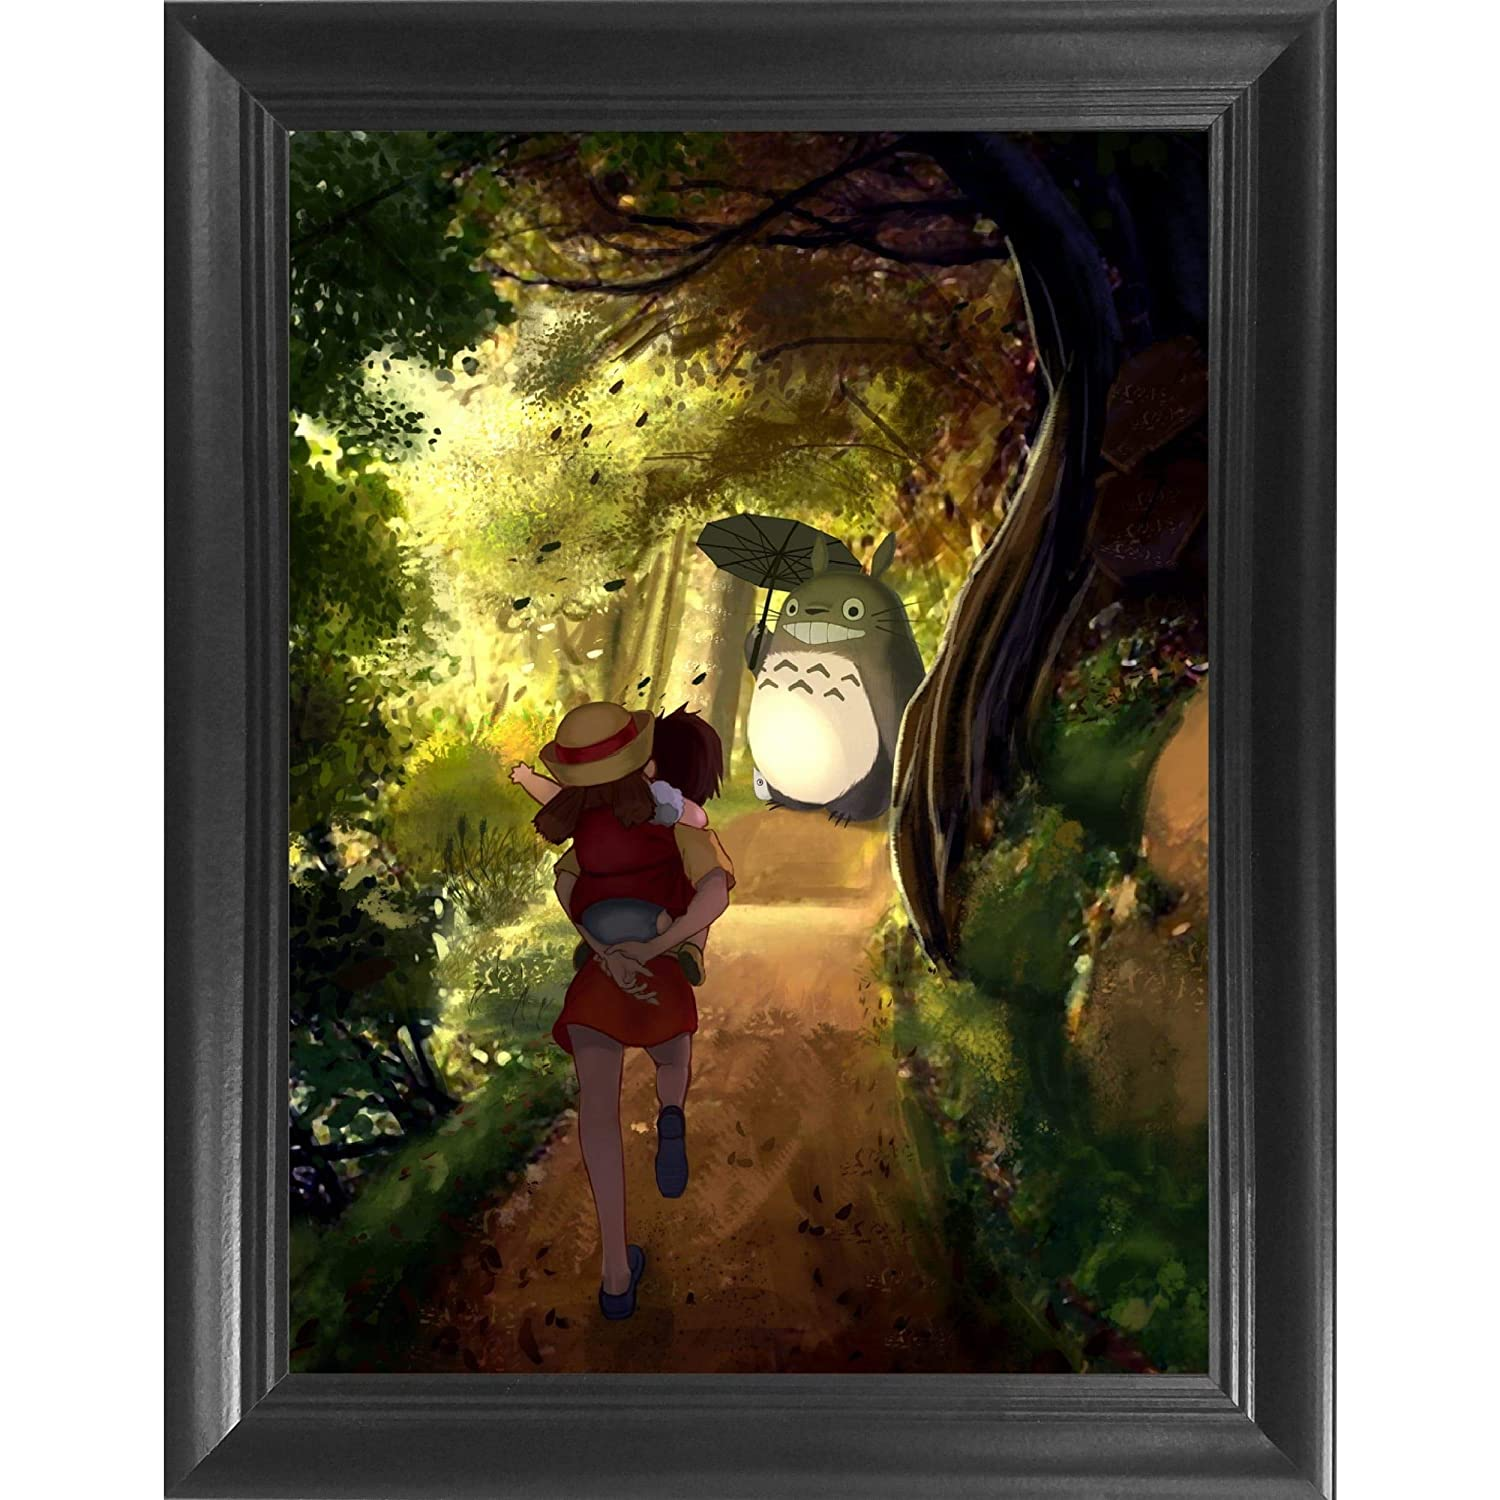 My Neighbor Totoro - Hayao Miyazaki Japanese Anime 3D Poster Wall Art Decor Framed Print | 14.5x18.5 | Lenticular Posters & Pictures | Memorabilia Gifts for Guys & Girls Bedroom | Spirited Away Movies